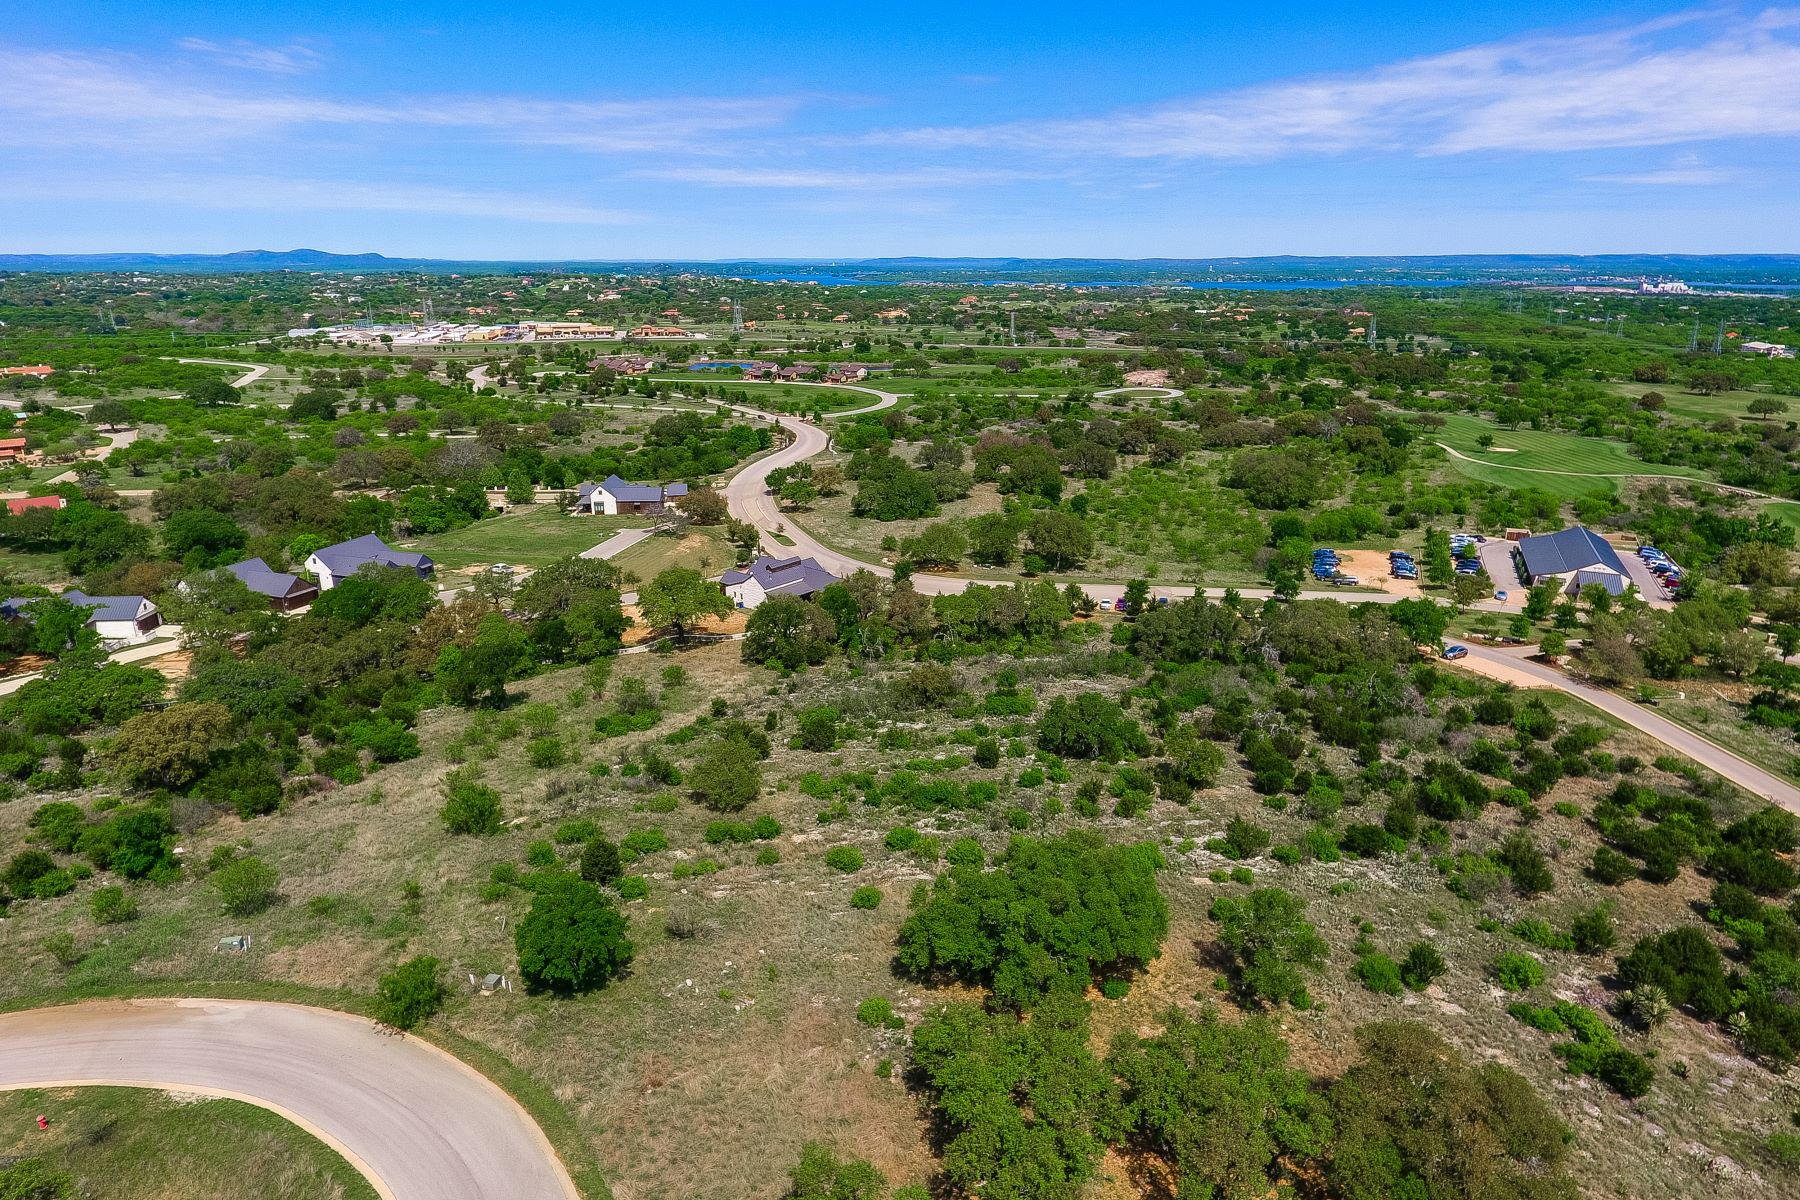 Land for Sale at 2.5 Acre Site on the Northernmost Point of Summit Rock Lot 16 & 17 Blazing Star Horseshoe Bay, Texas 78657 United States